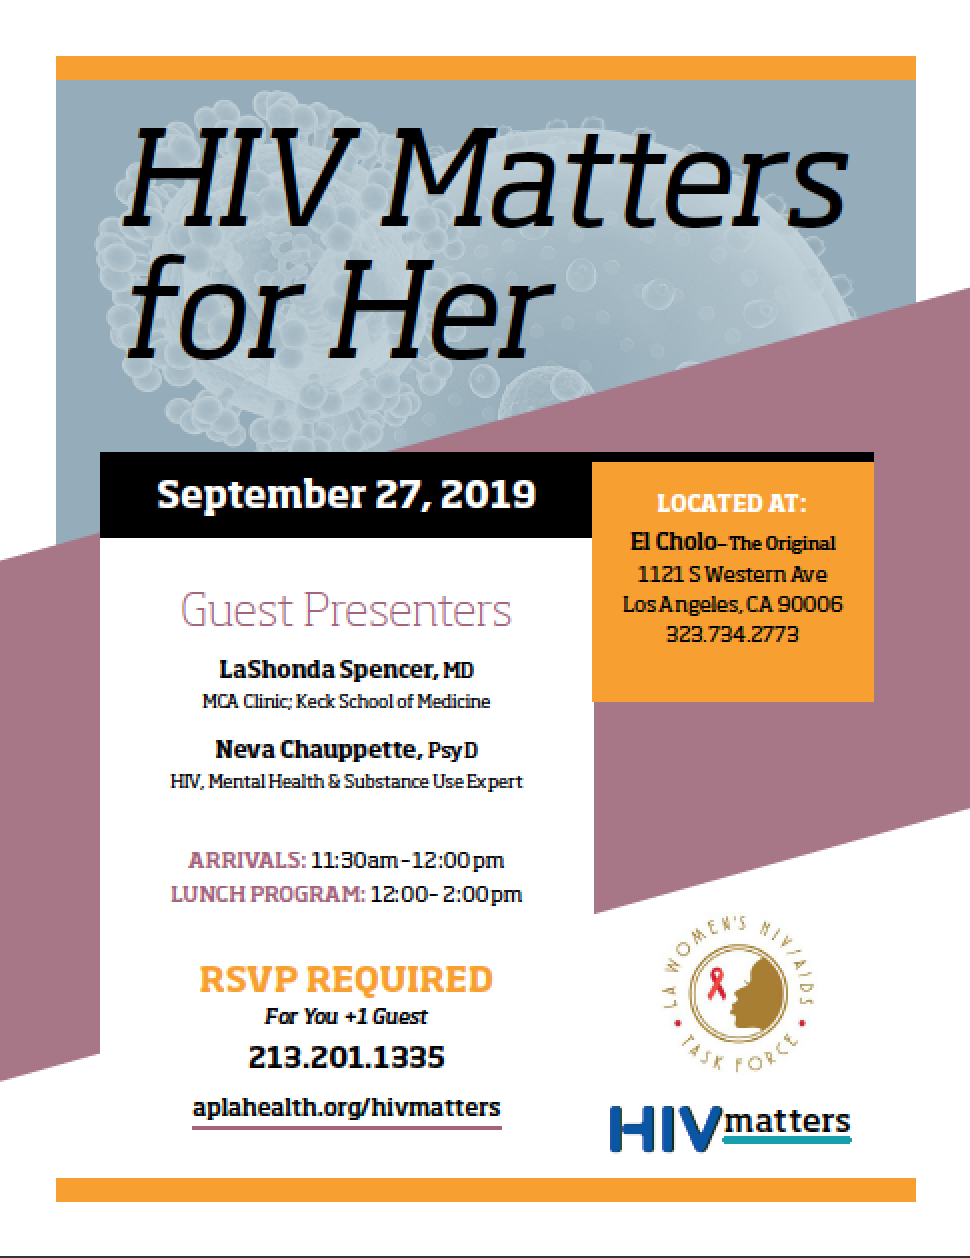 hivmatters4her.png